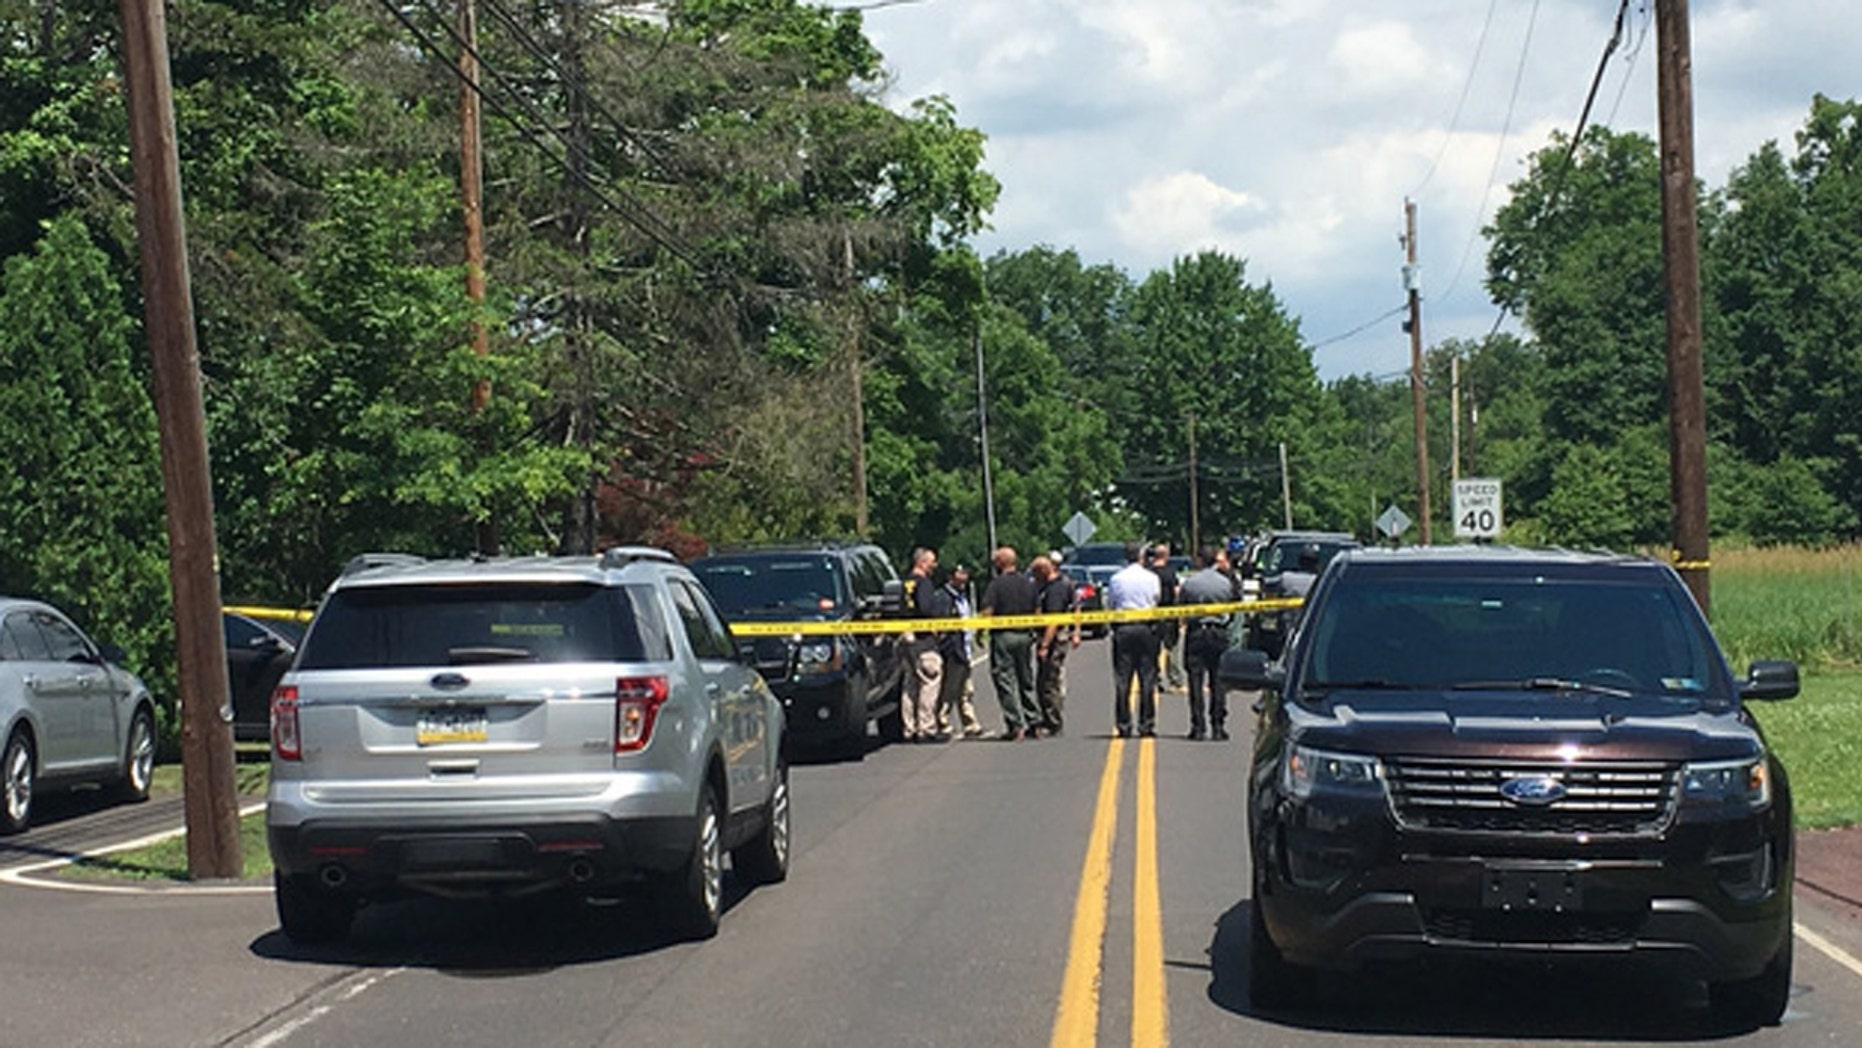 Authorities in Pennsylvania swarmed two homes as part of an investigation into a series of mysterious explosions since April.